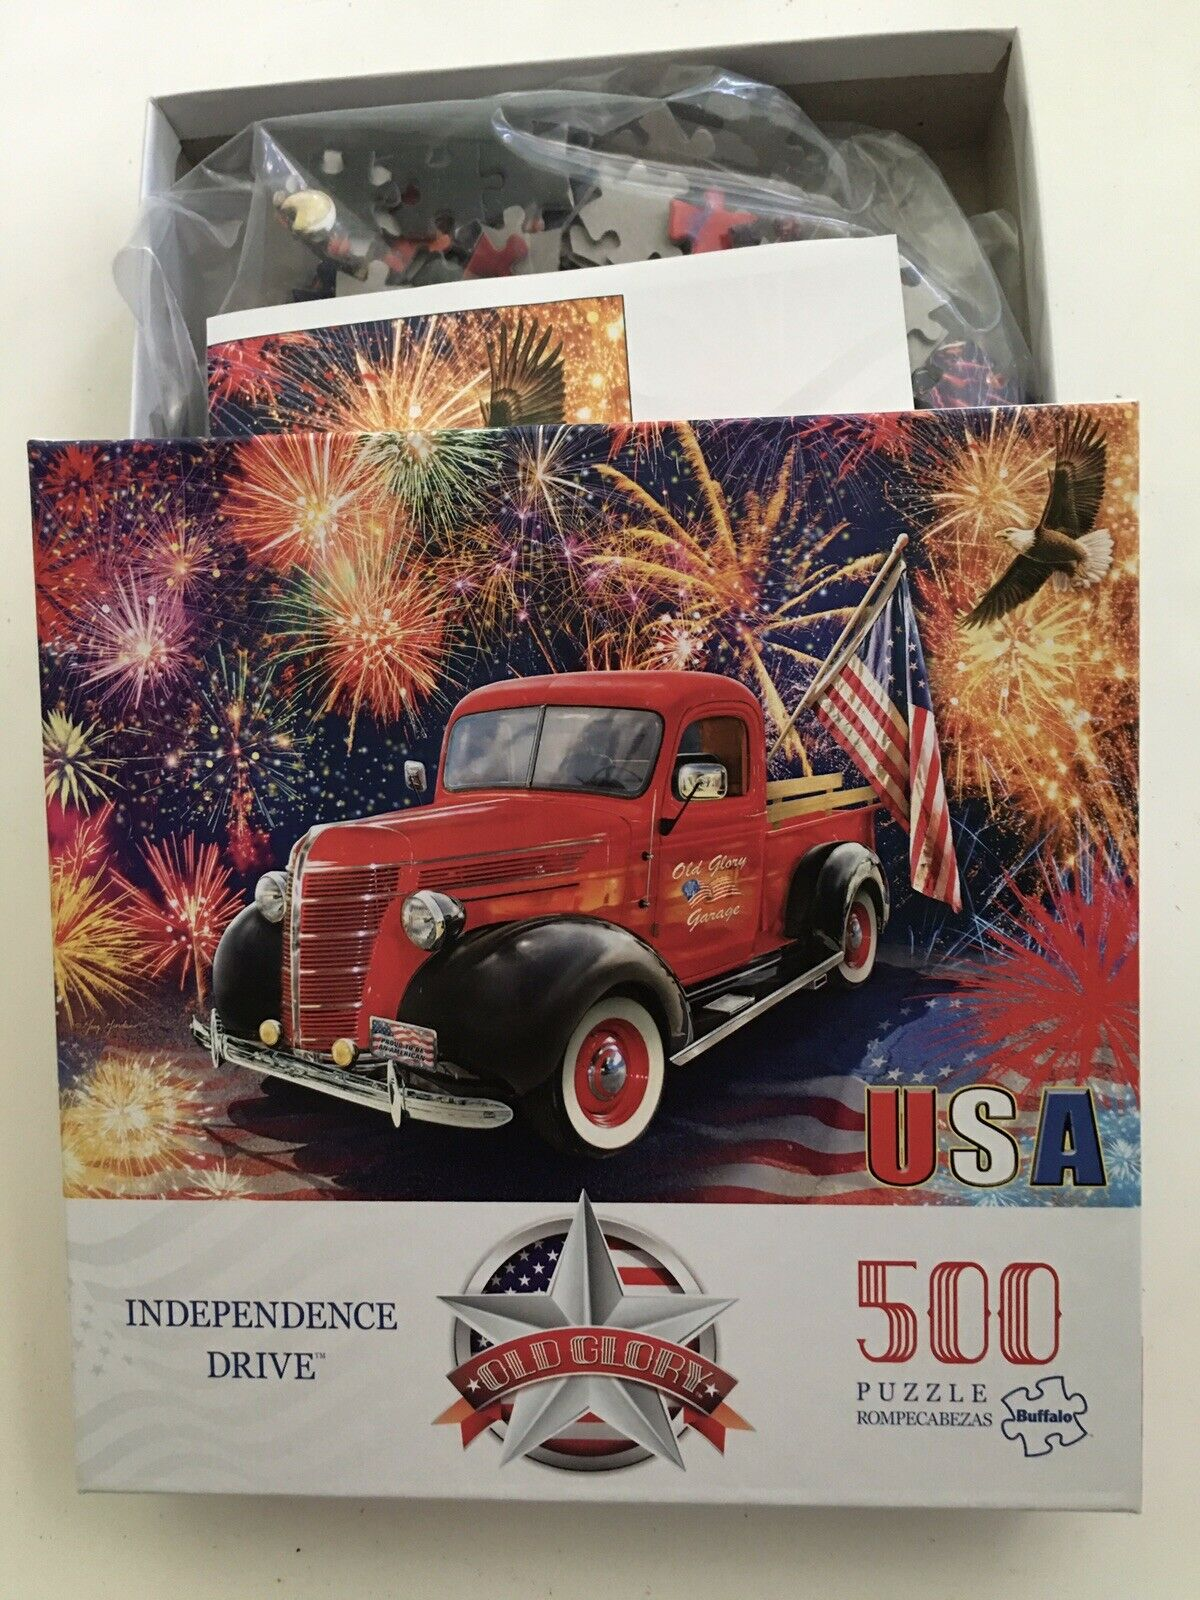 500 Piece Jigsaw Puzzle Independence Drive Old Glory Buffalo Games